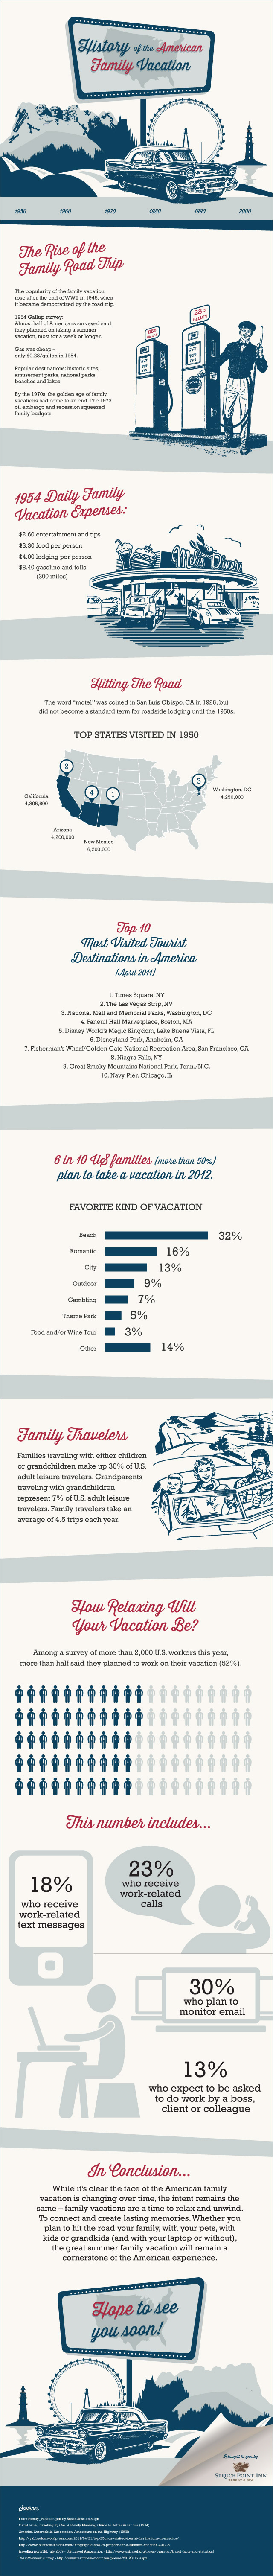 history-of-the-american-family-vacation_5047b35eead8b